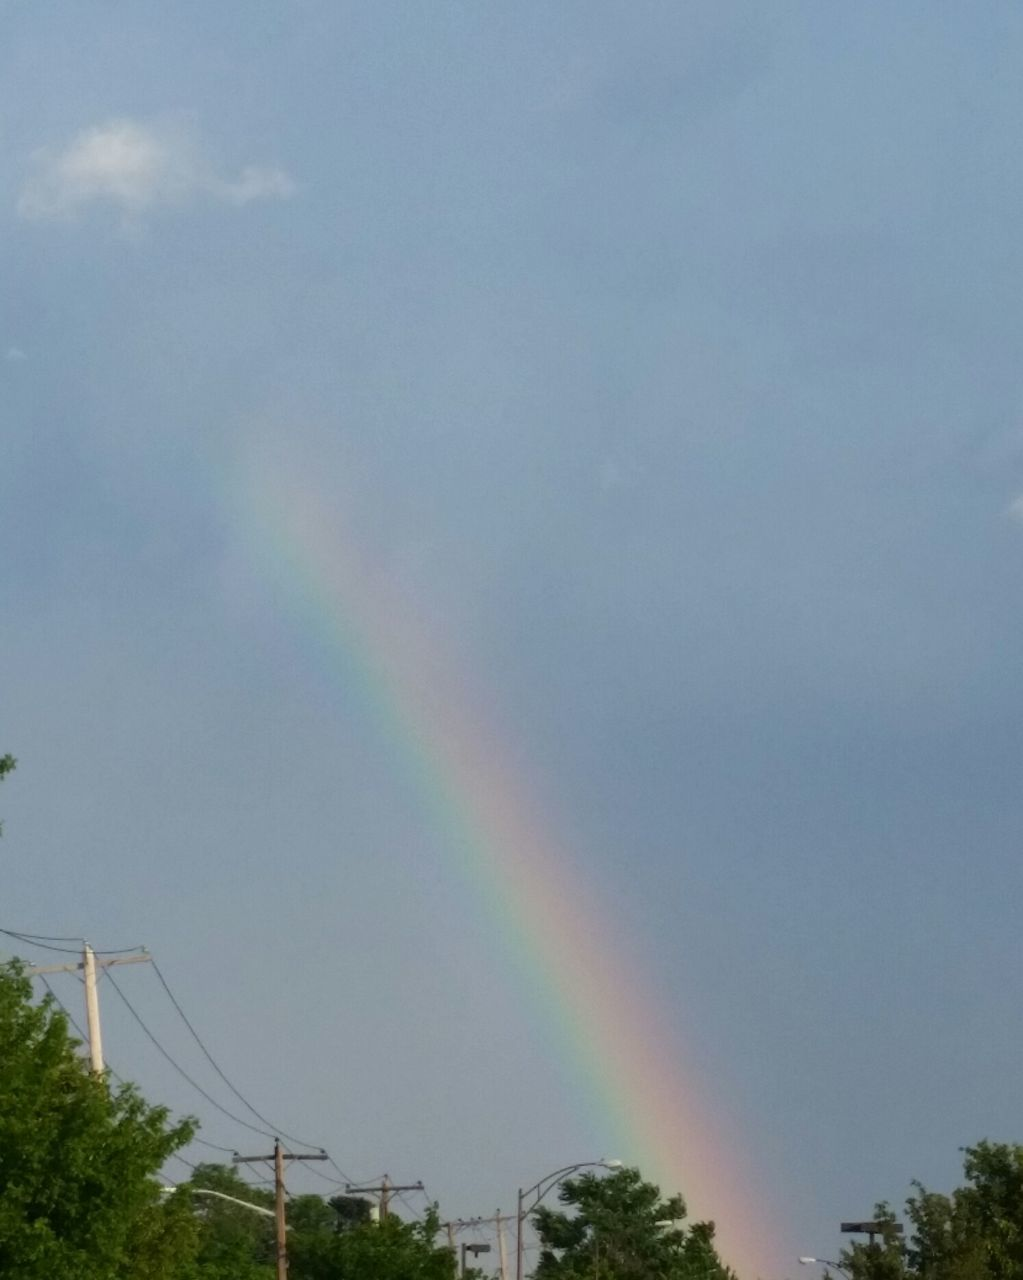 rainbow, multi colored, double rainbow, day, outdoors, tree, low angle view, sky, no people, nature, scenics, beauty in nature